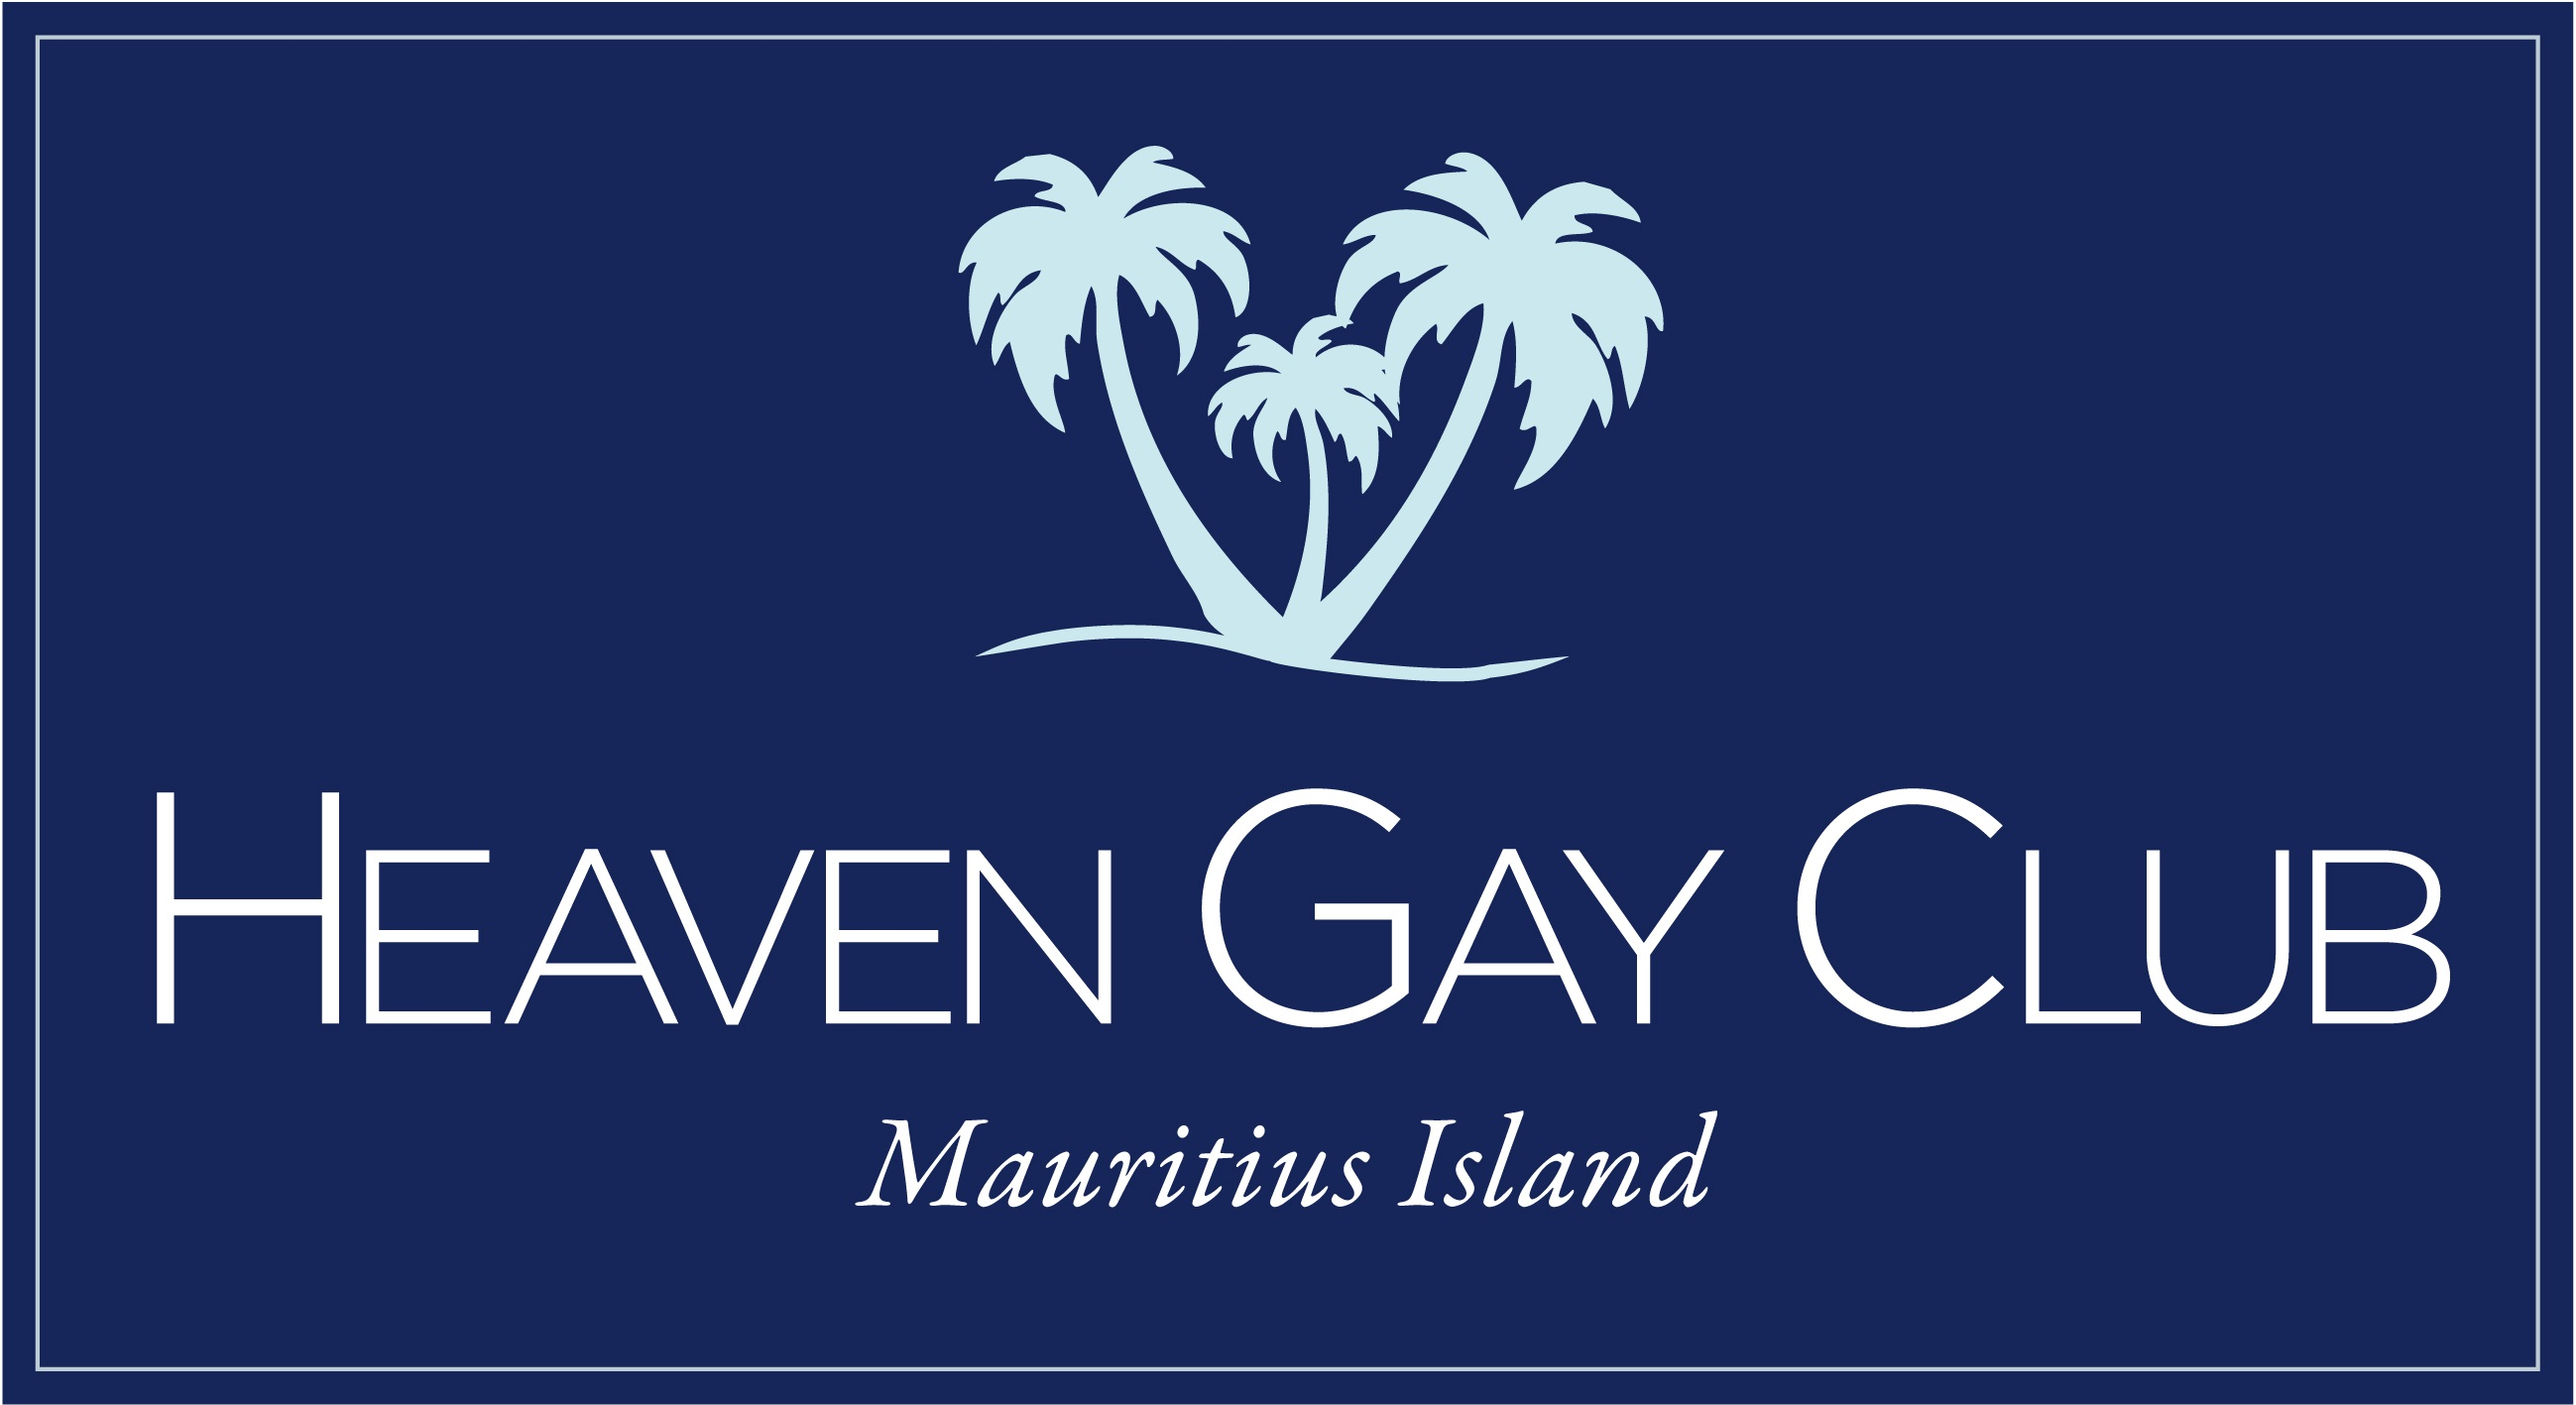 Heaven gay club londres